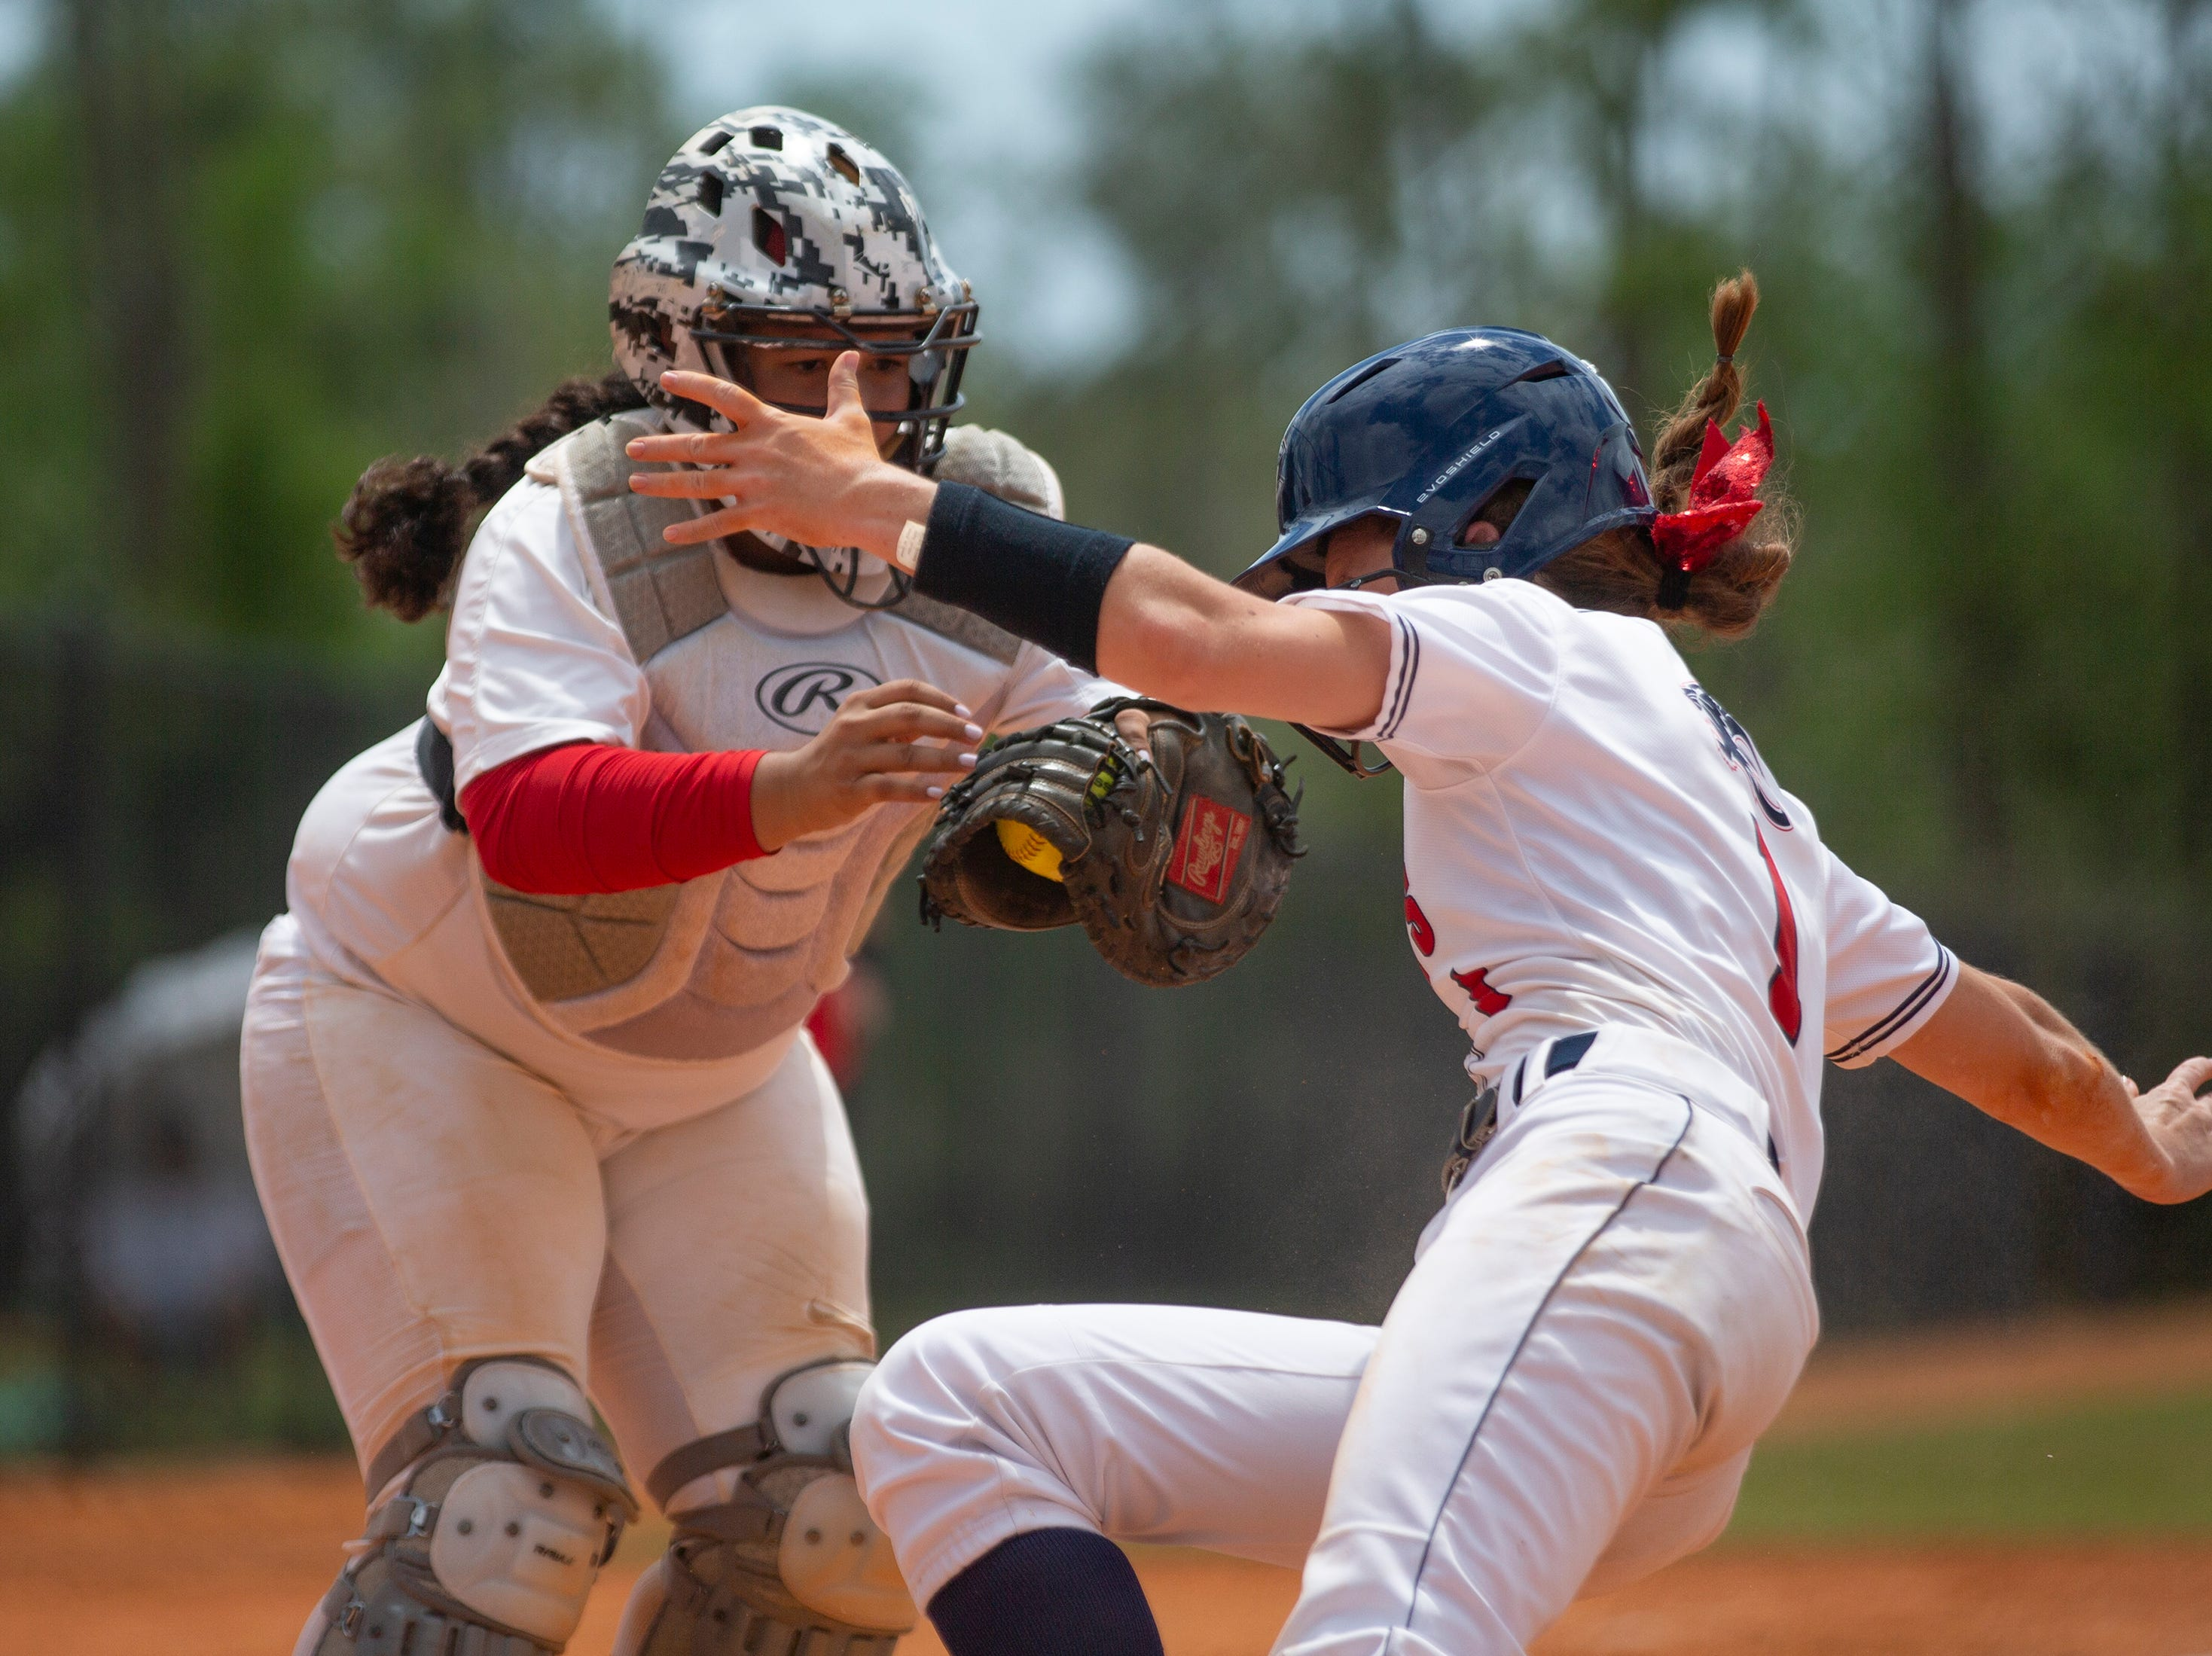 Doral Academy's Amanda Ramirez stops Estero's Tyler Olive from scoring a run during the third place game at the Longshore Memorial softball tournament, Saturday, April 13, 2019, at North Collier Regional Park in North Naples.